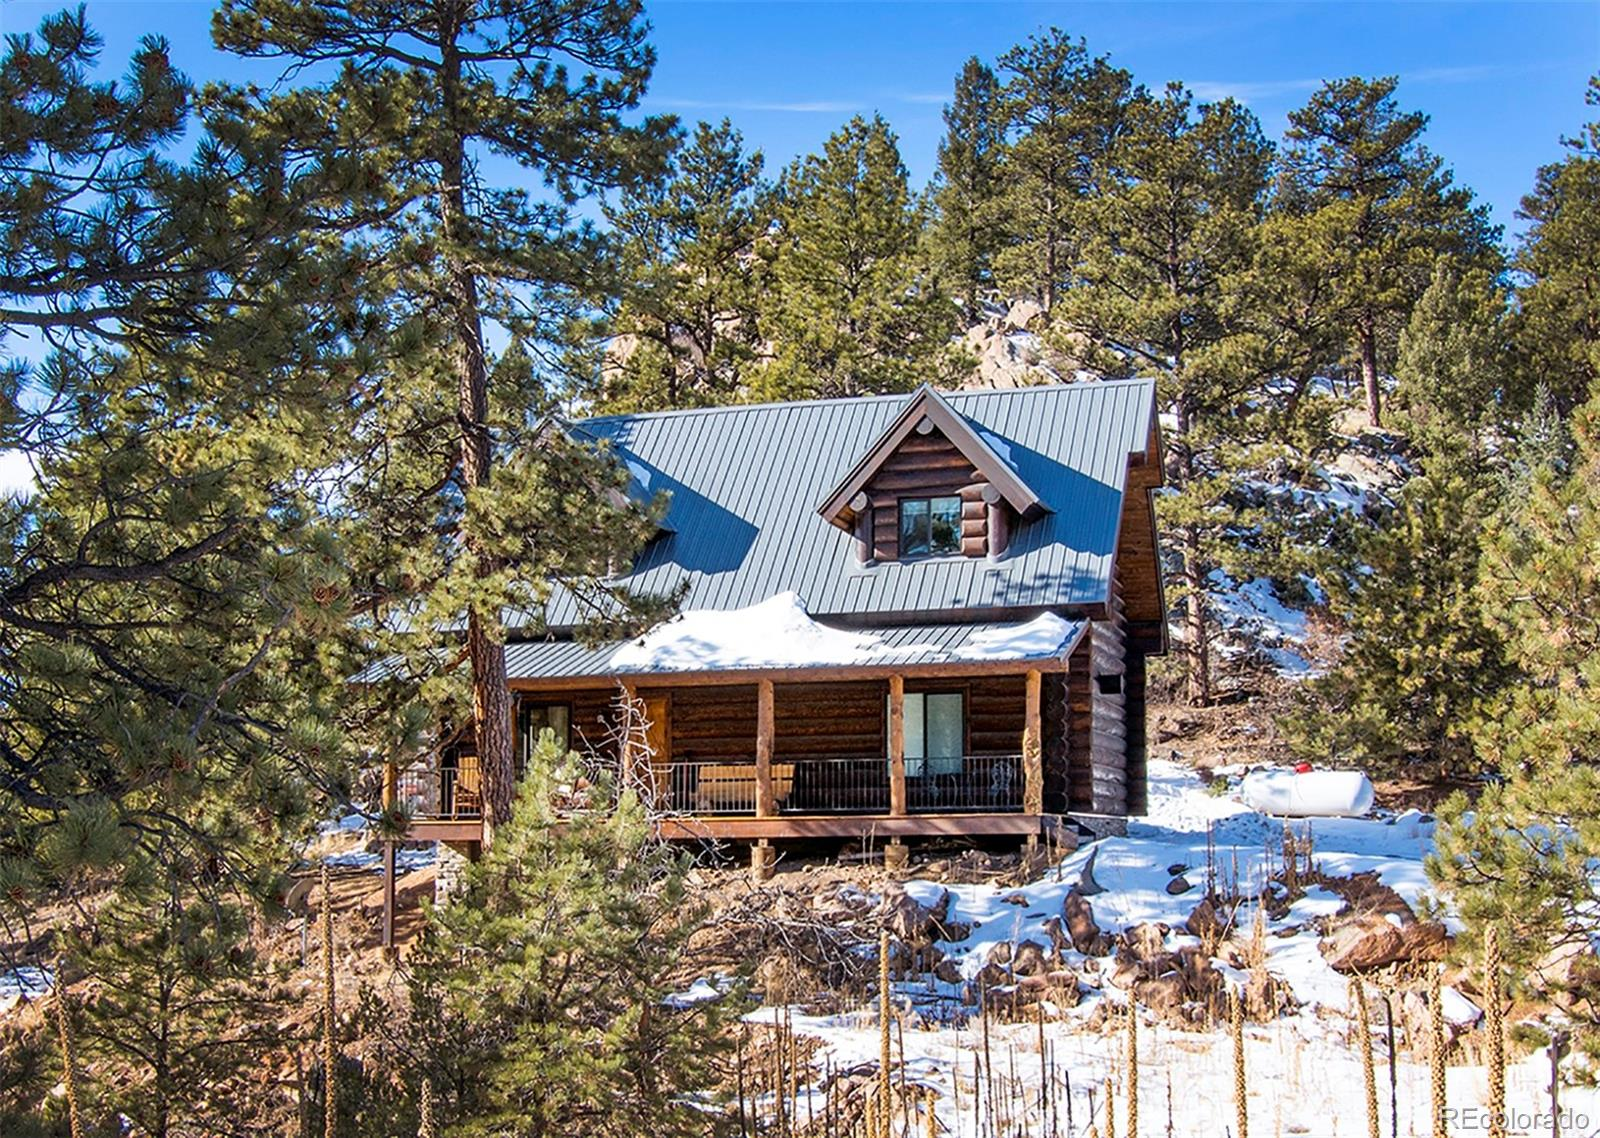 """This amazing log home sitting on over five acres adjoining thousands of acres of BLM was built with quality in mind. This is Colorado living at it's best, adorned with 14"""" pine logs, knotty oak hardwood flooring, custom wood cabinetry, a gorgeous log stairway with wrought iron rails, log interior walls, log beams, tongue and groove ceilings and beetle kill pine finishes.This home offers main level living with open space and gorgeous views from every window. The eat in country kitchen would make any cook happy with ample counter space including steel brushed granite counter tops, stainless steel appliances and a four stool island with butcher block top. The Master Bedroom boasts beautiful views of Mt. Pisgah and a full bath including a claw foot tub and a separate shower with glass surround. Upper level consists of a spacious loft area, two additional bedrooms and a full bath. Sit in the outdoor hot tub and enjoy the silence while surrounded by towering pines and rock formations. Walk to BLM land for some of the best Elk and Mule Deer hunting in Teller County, hiking and all of your recreational fun! Close to Gold Medal fishing and only fifteen minutes to the Historic town of Cripple Creek. RV parking Pad with 220 hook ups!! Great income potential with VRBO or Airbnb. Don't miss this one......"""